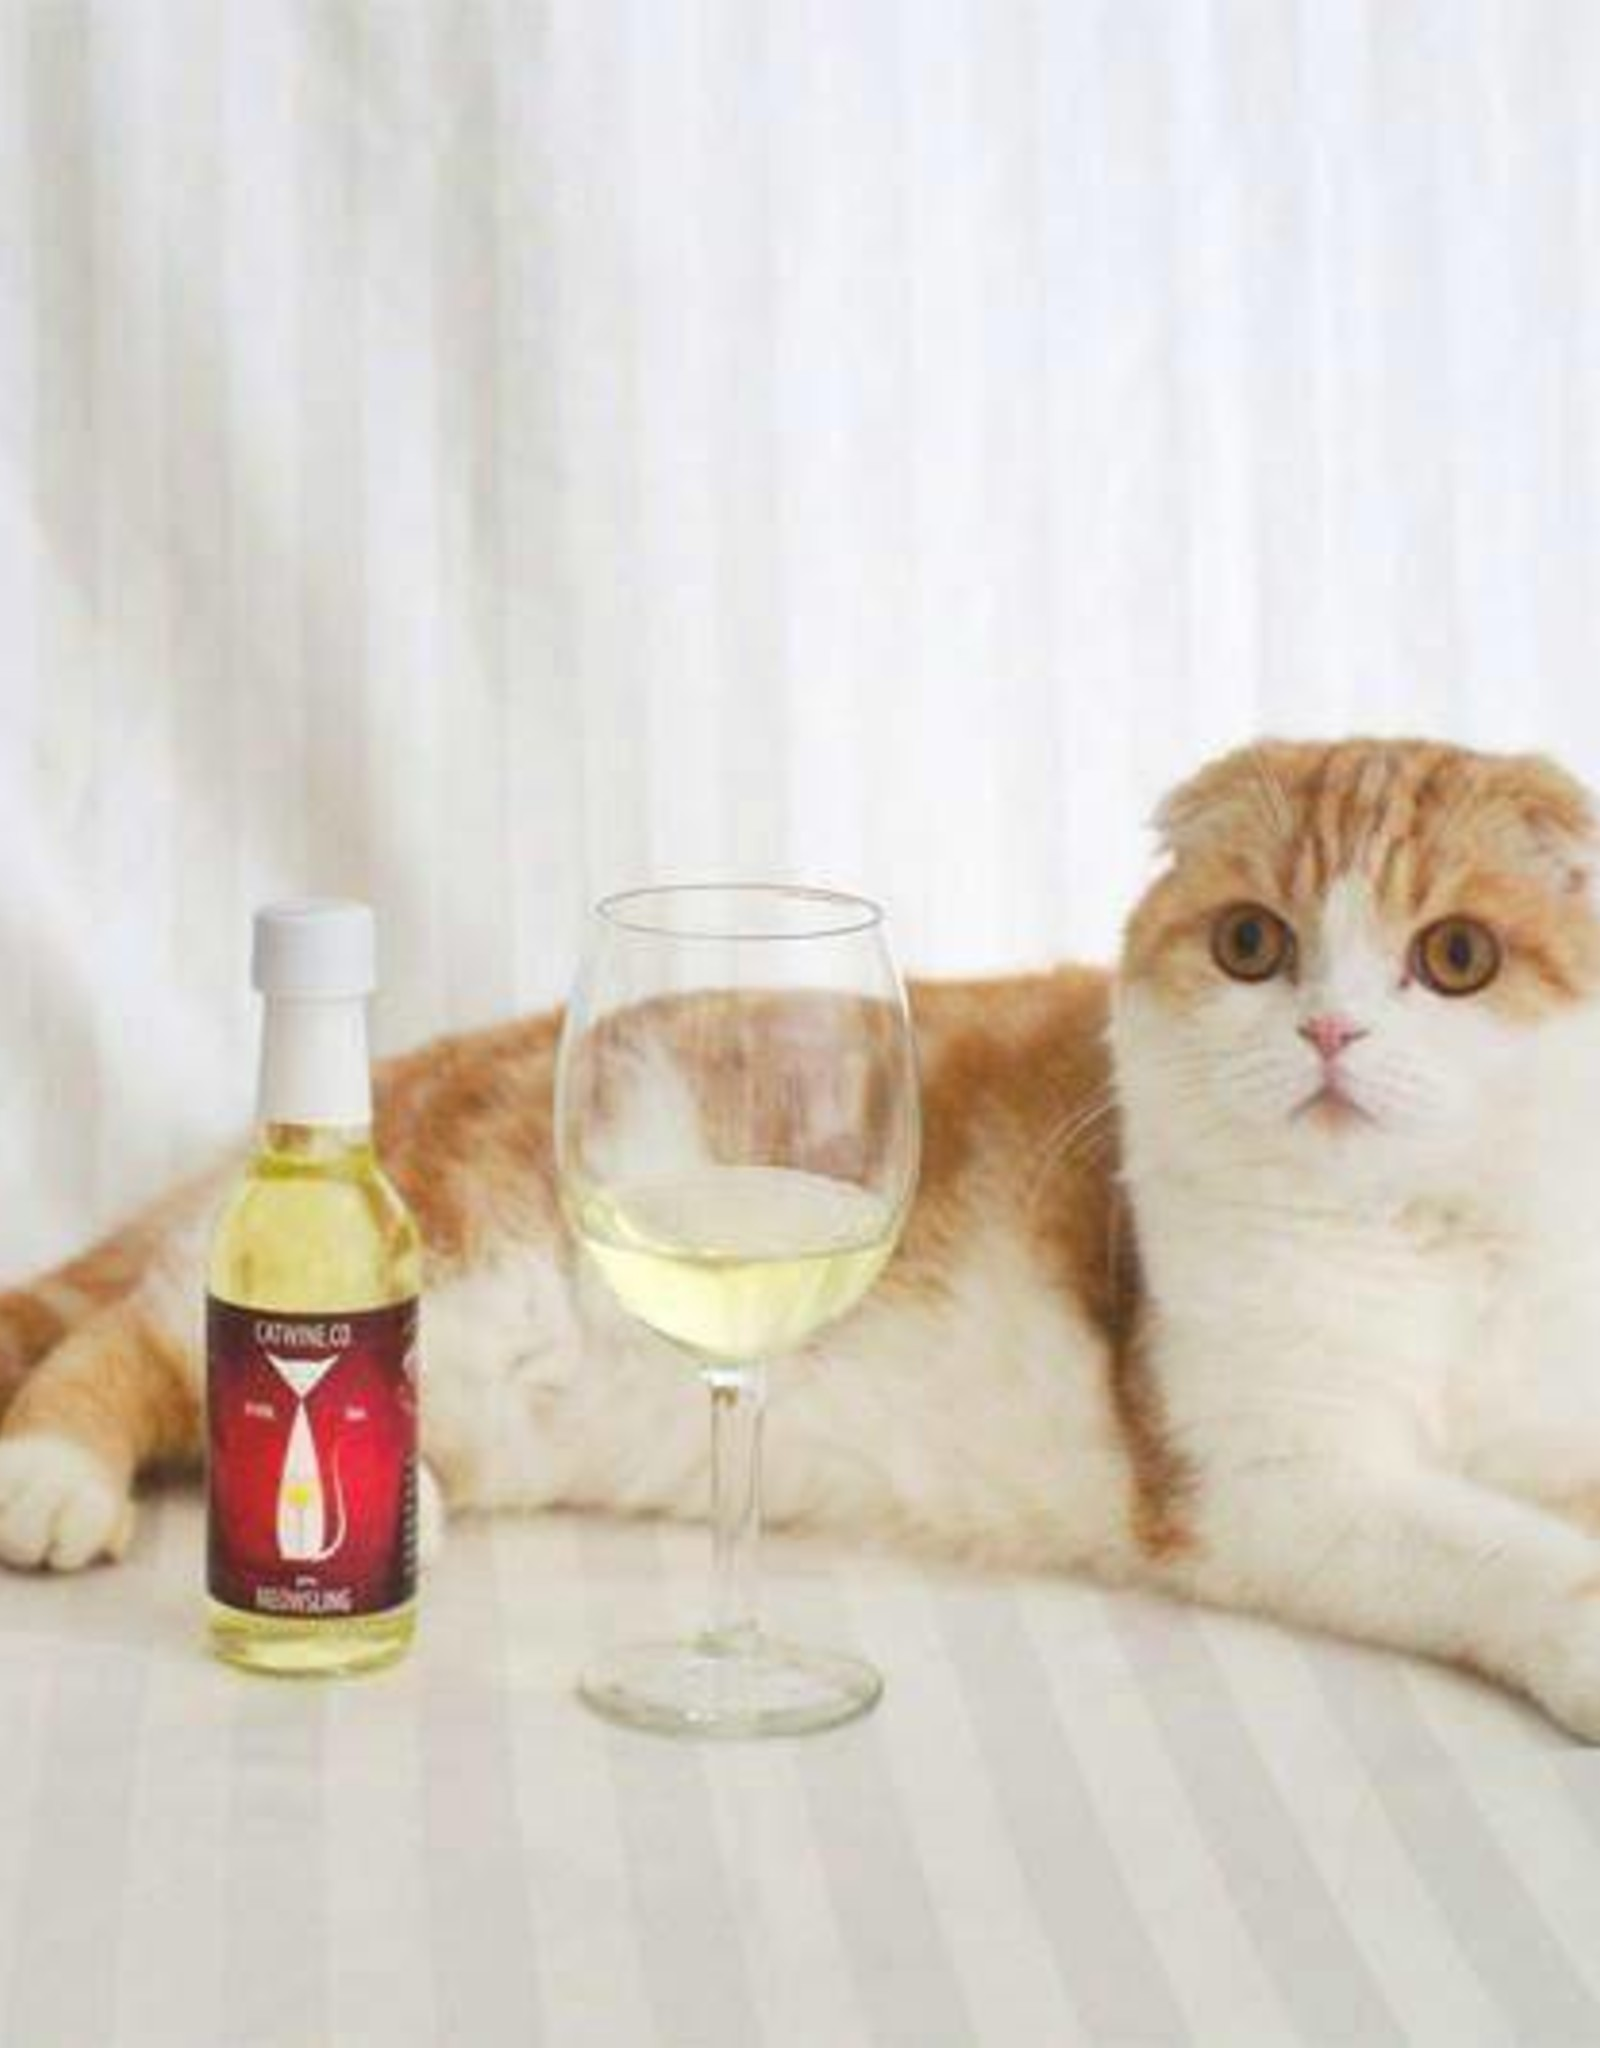 Pet Winery Pet Winery Meowsling